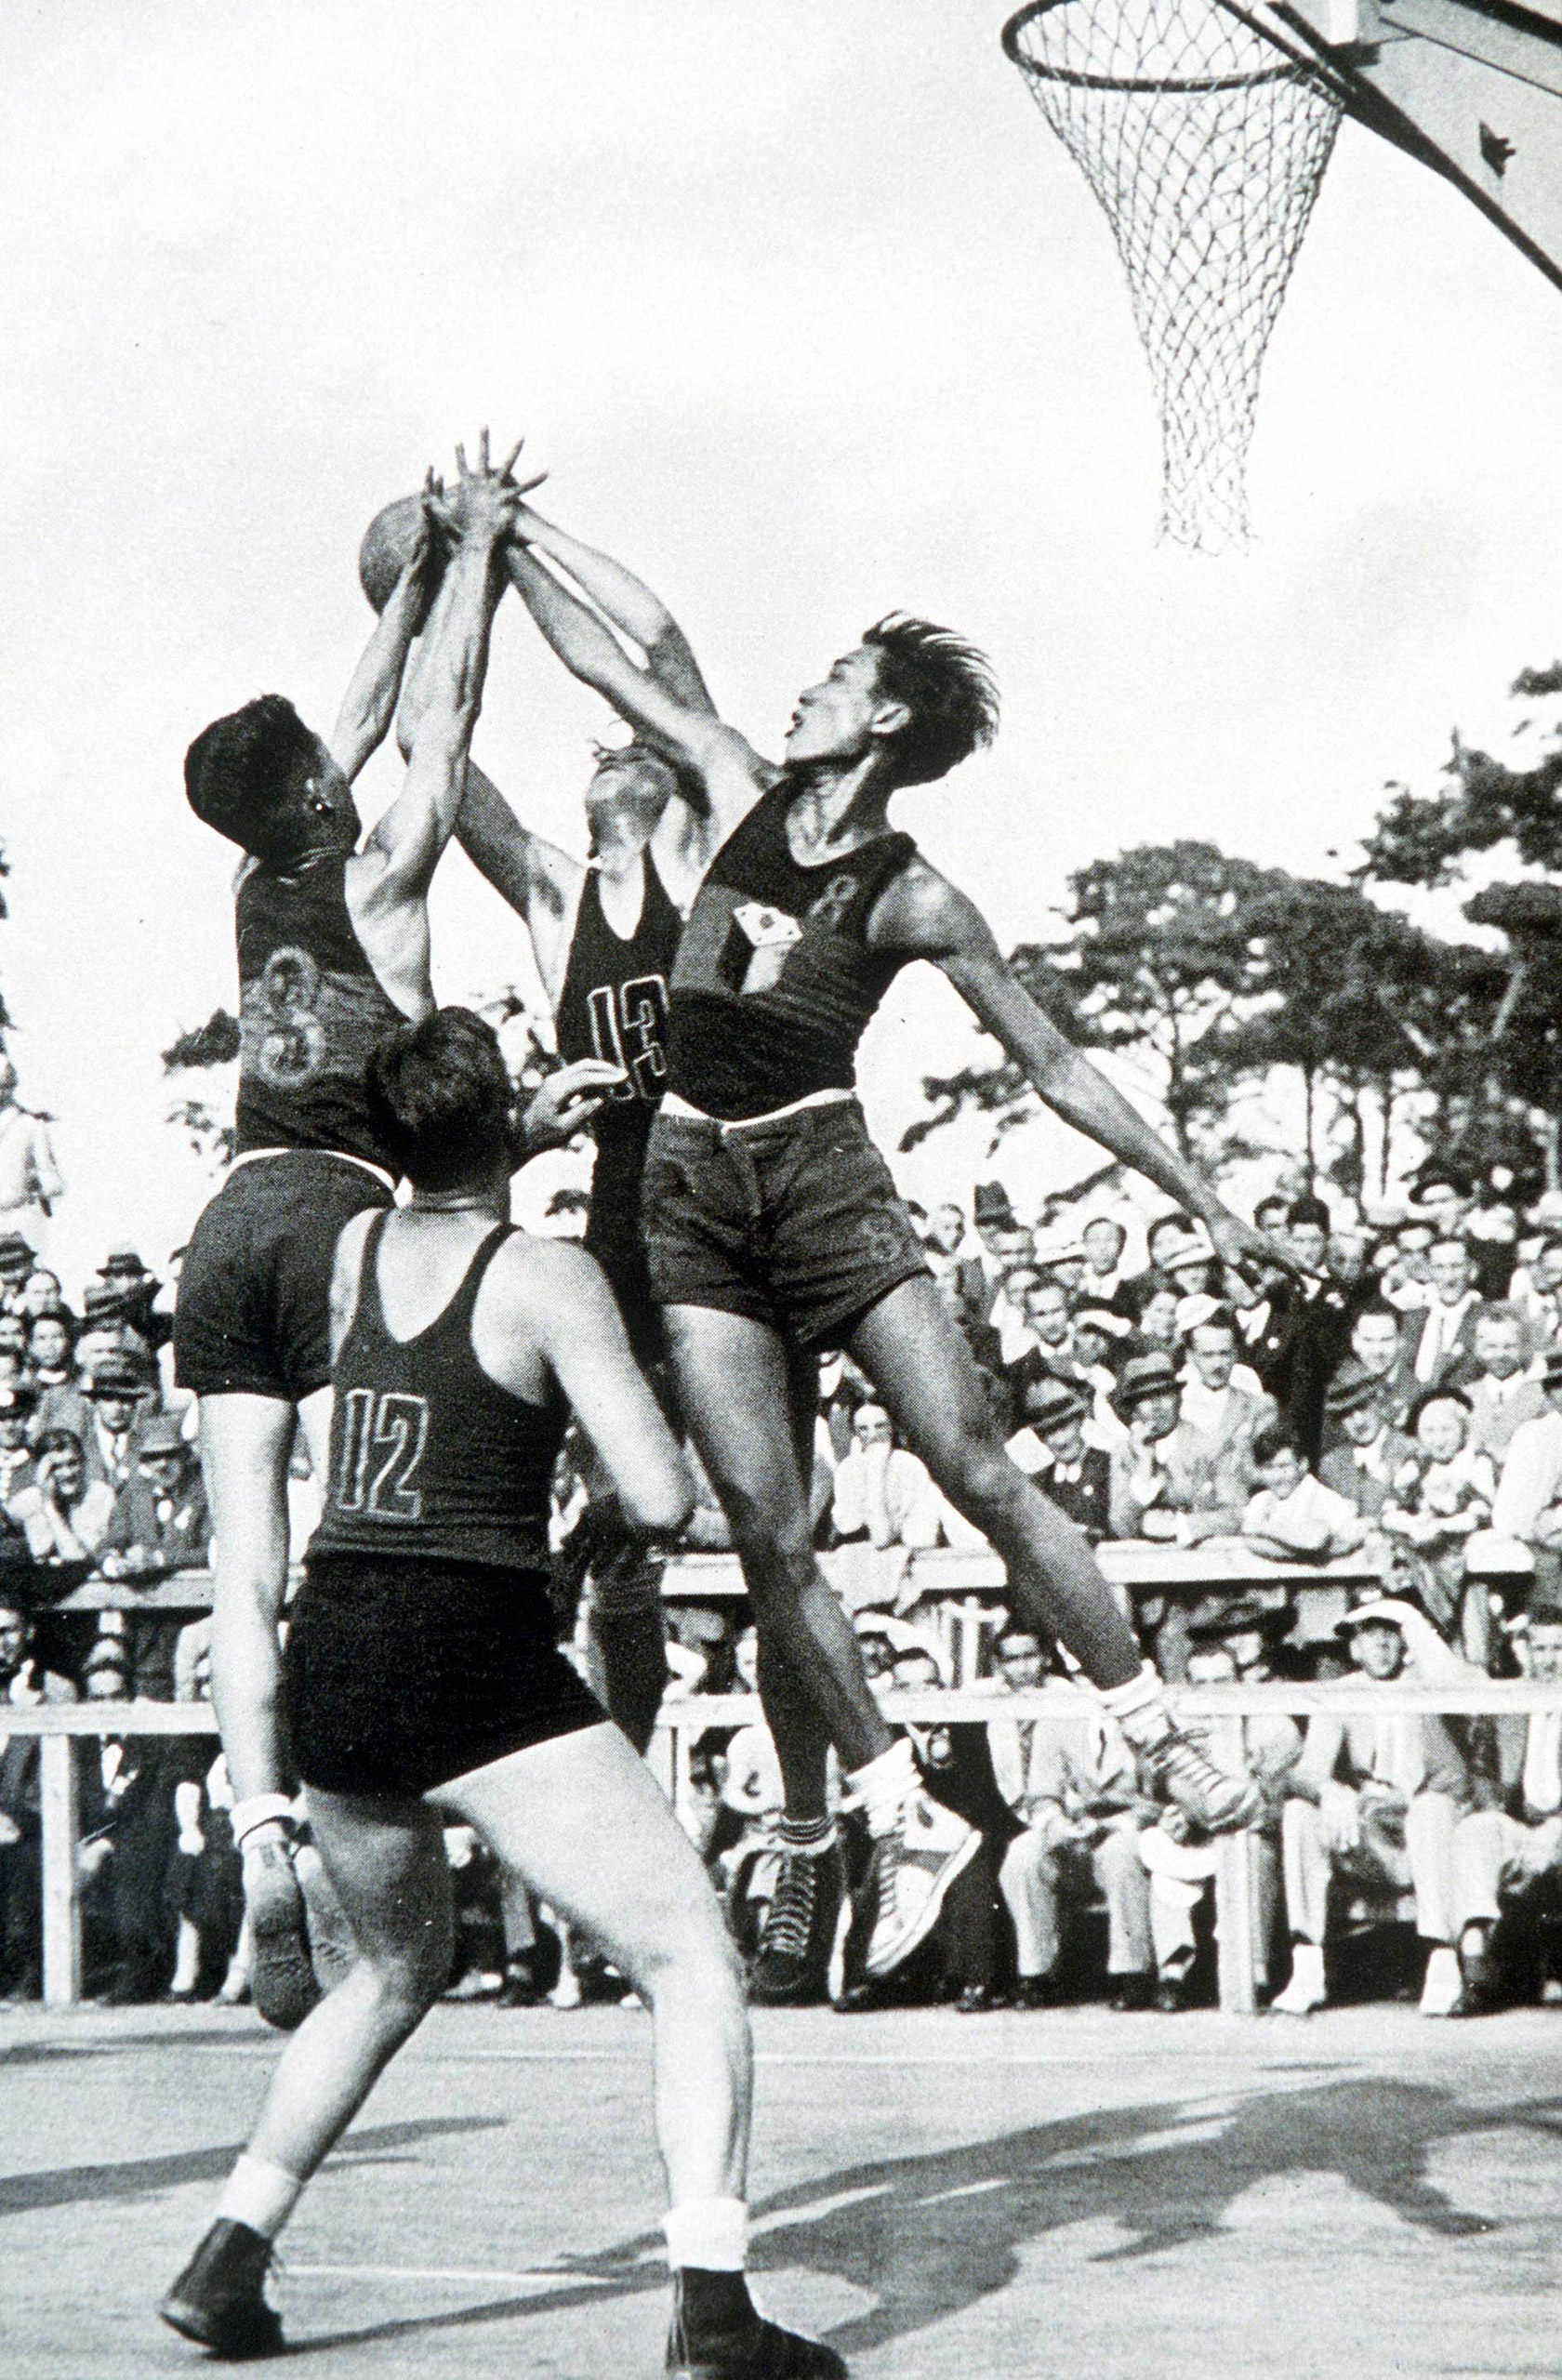 Basketball action between the Philippines and Mexico at the 1936 Olympic Games in Berlin